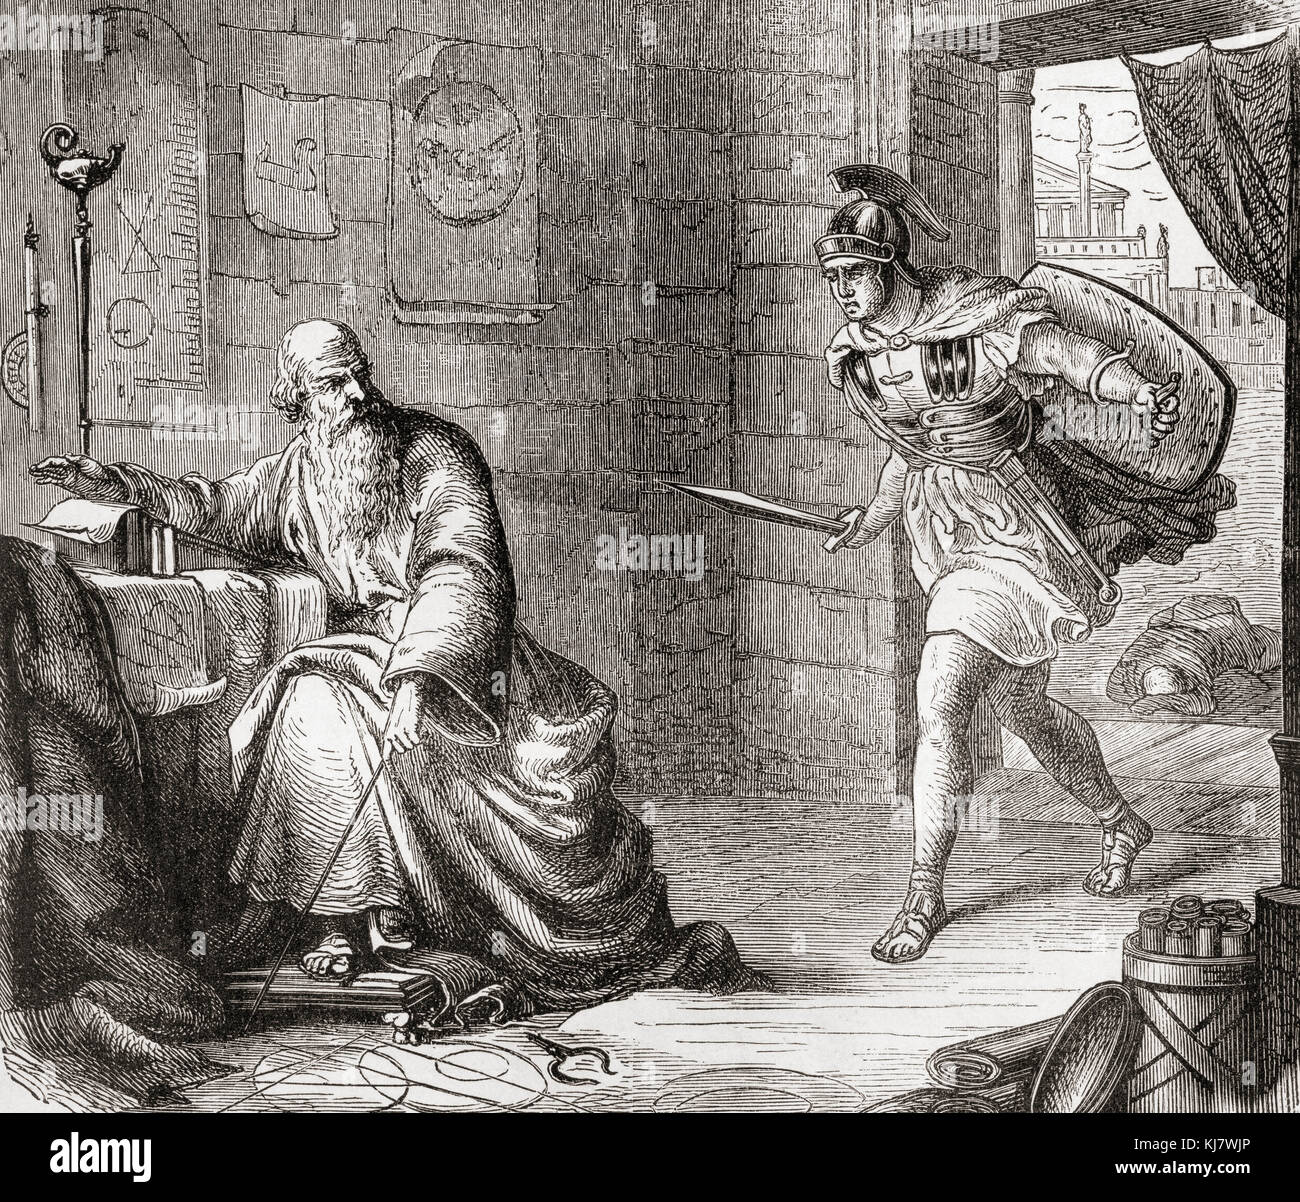 The death of Archimedes during the Siege of Syracuse when he was killed by a Roman soldier for not replying to a - Stock Image